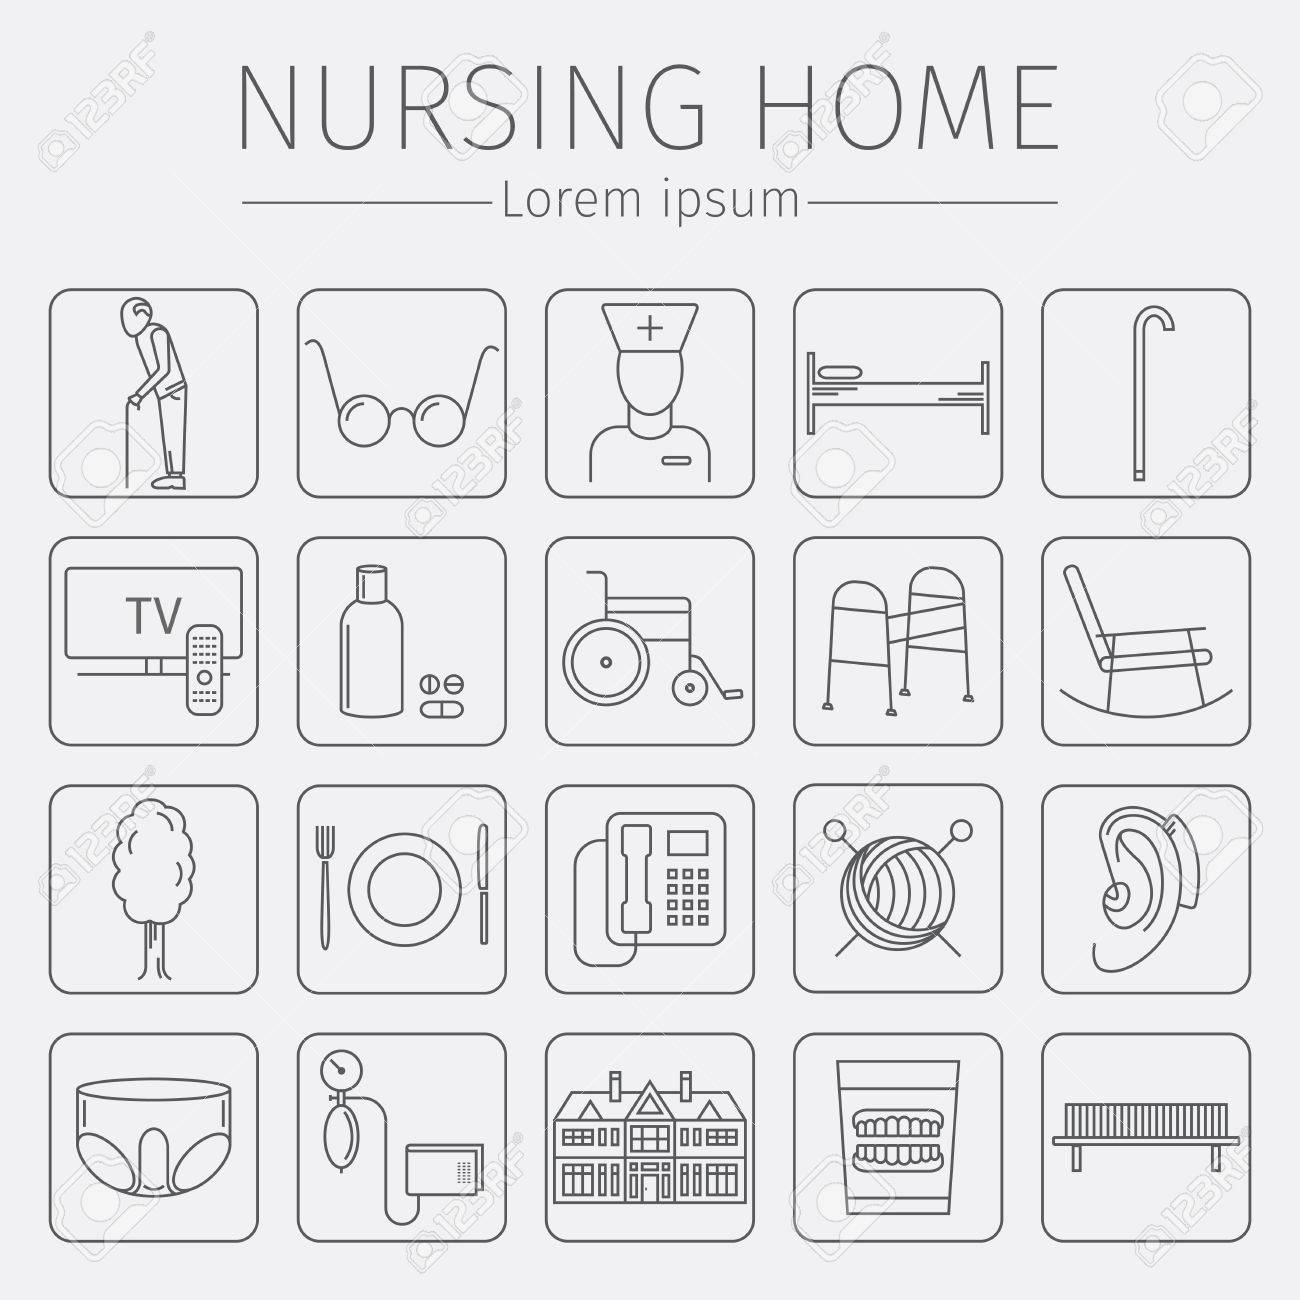 Nursing home line icon medical care for the elderly symbols nursing home line icon medical care for the elderly symbols of older people vector buycottarizona Image collections